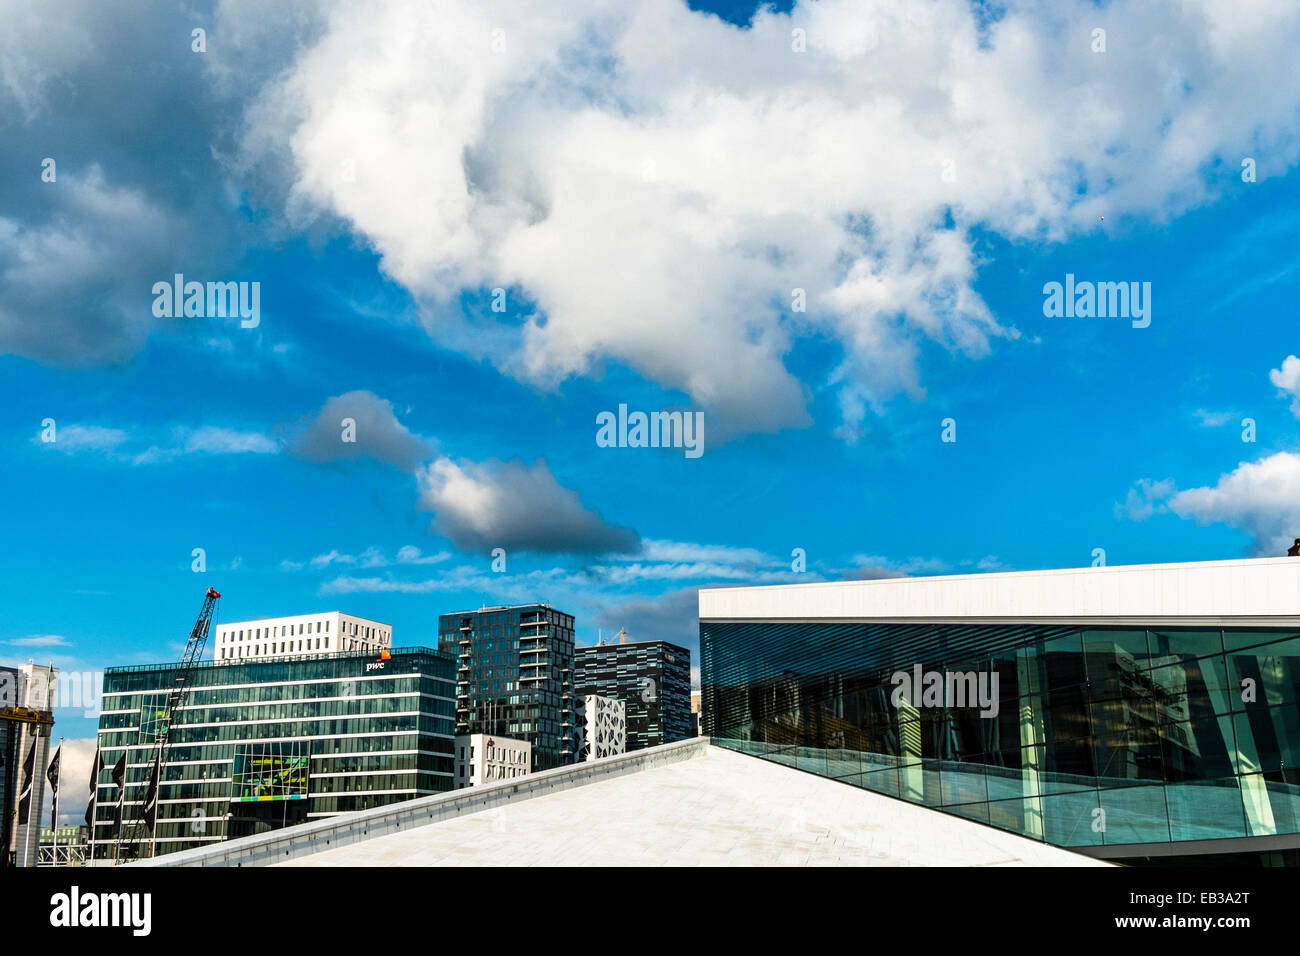 Norway, Oslo, National Oslo Opera House, Partial view of roof with highrise buildings in background Stock Photo